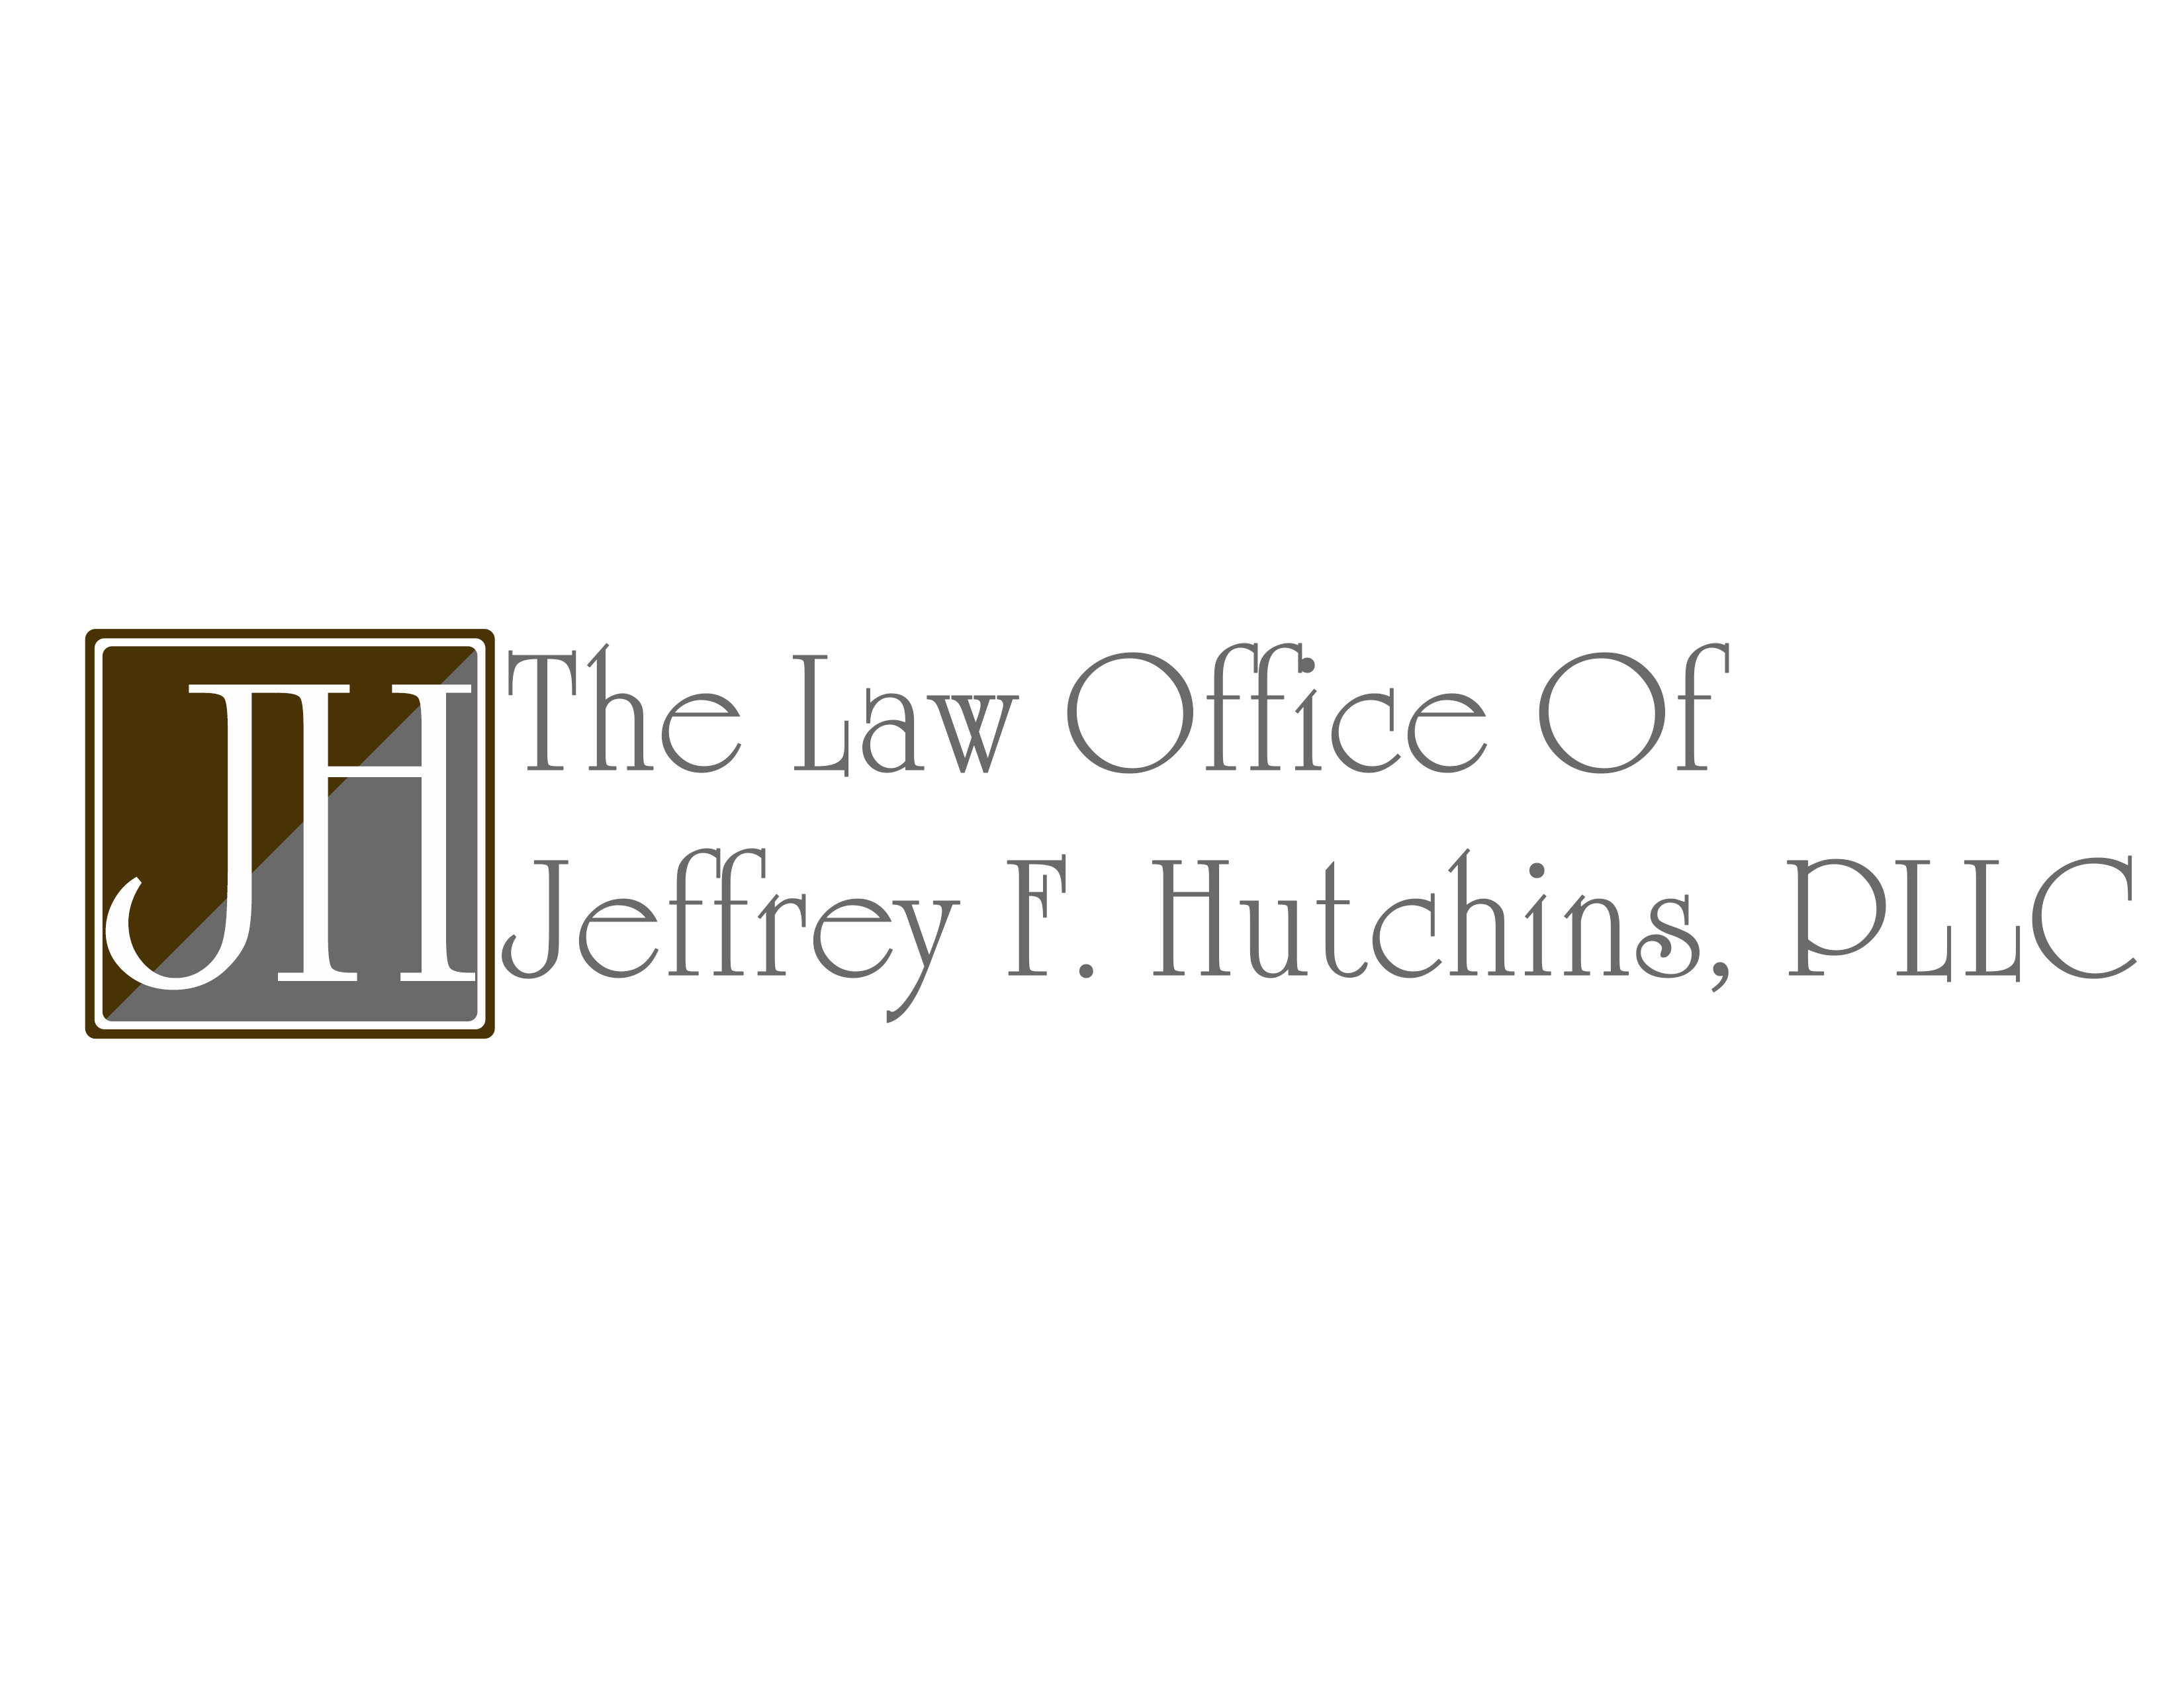 Logo of The Law Office of Jeffrey F. Hutchins